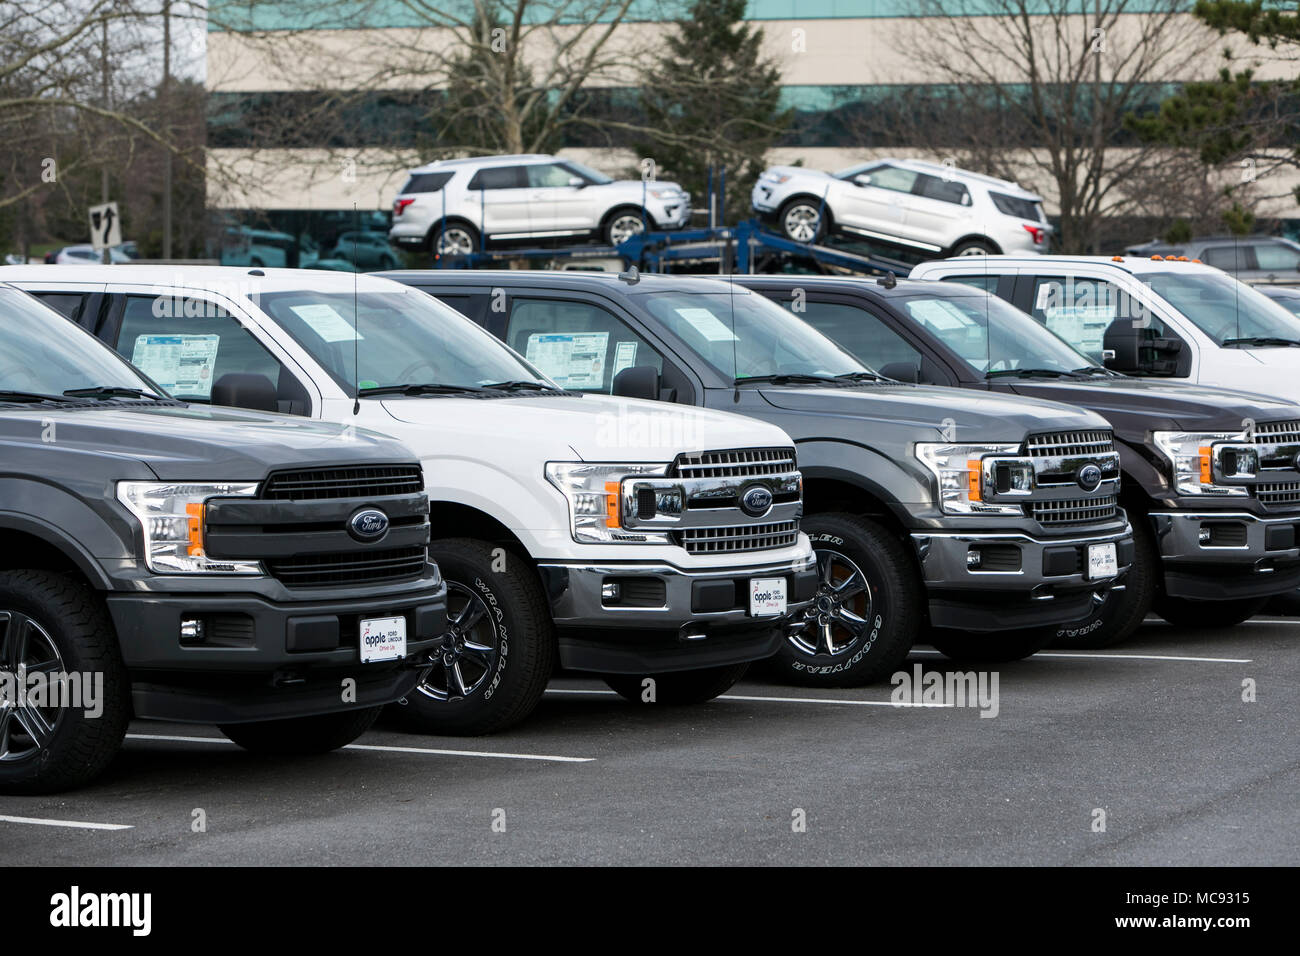 A row of new Ford F-series pick-up trucks and Explorer SUV's at a car dealership in Columbia, Maryland on April 13, 2018. - Stock Image